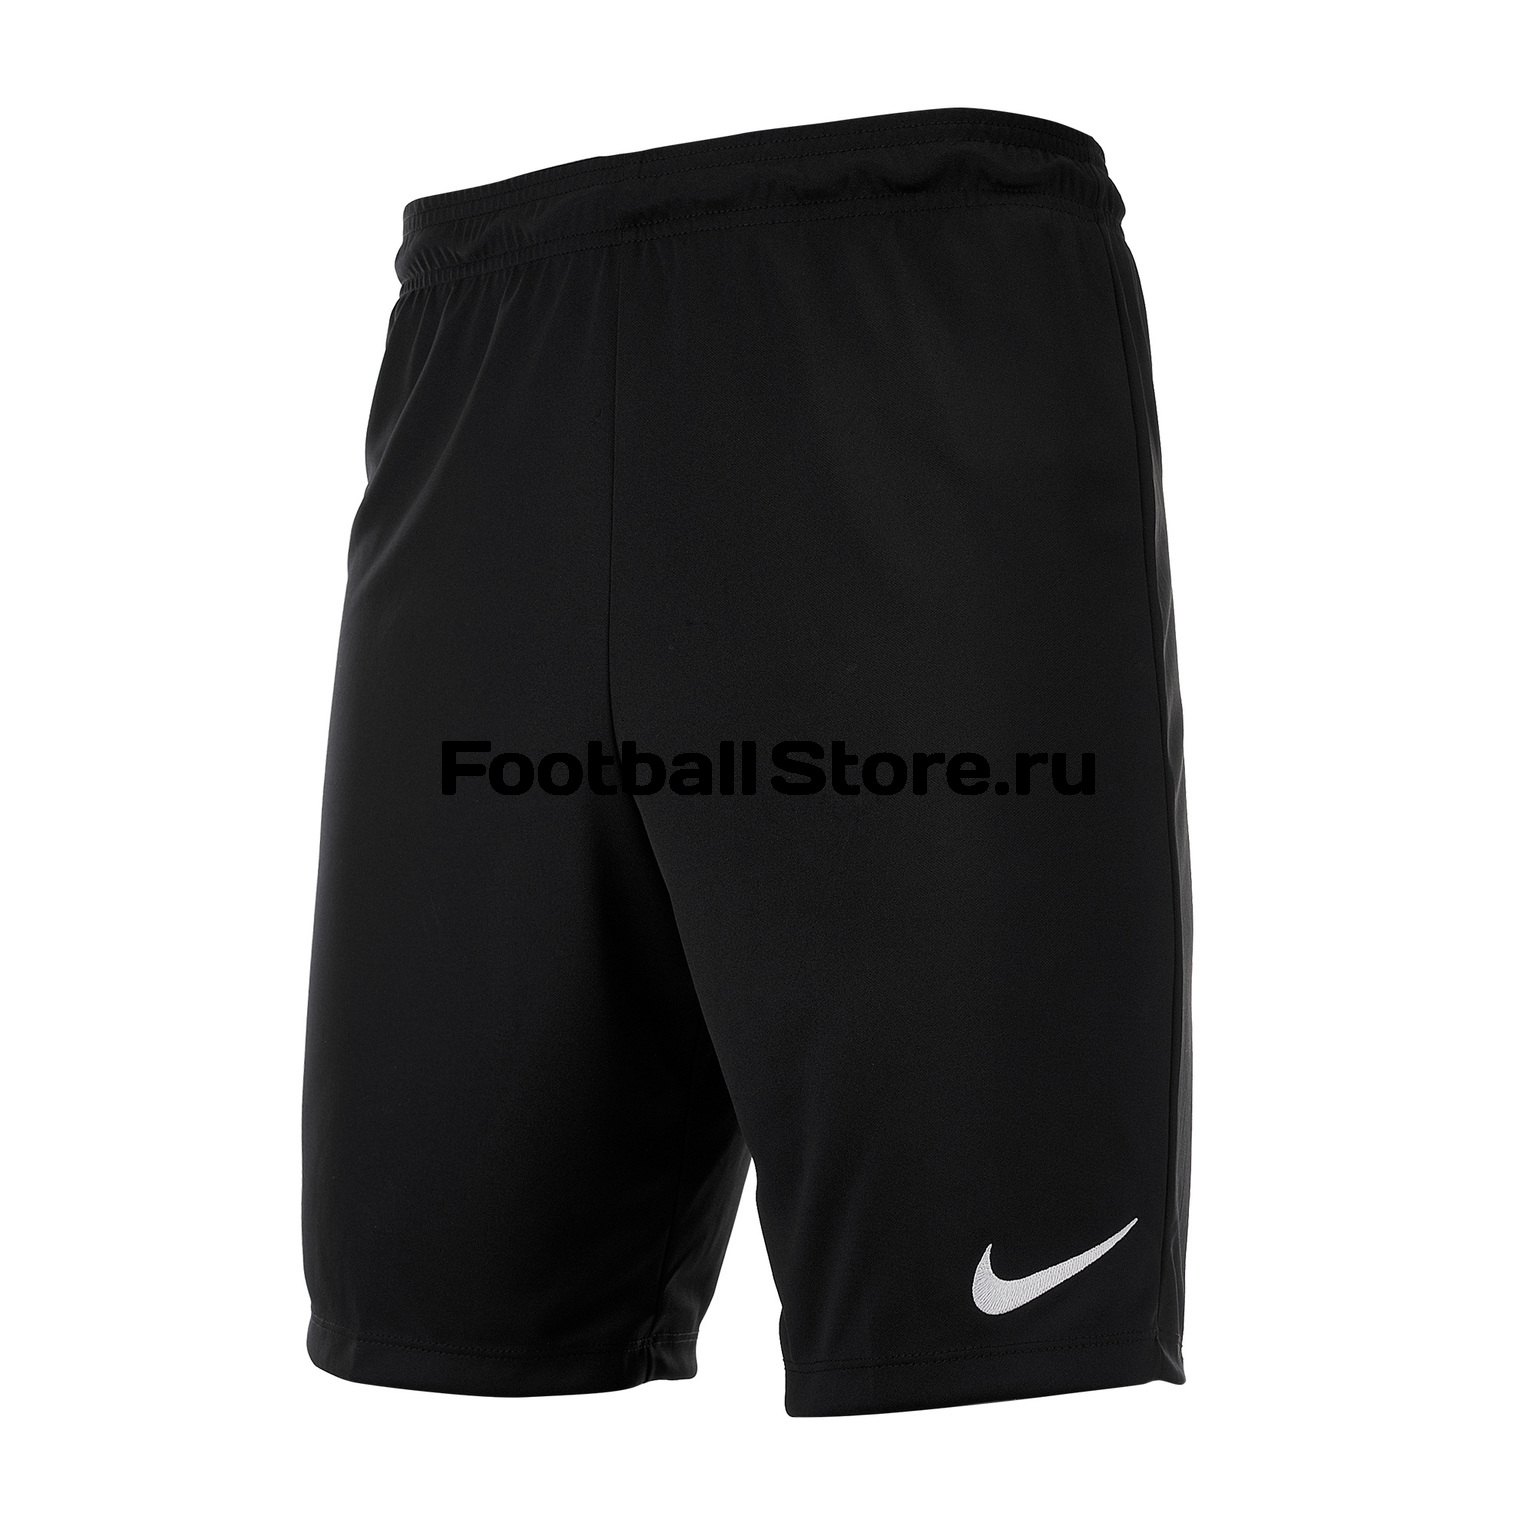 Шорты Nike Park II KNIT Short NB 725887-010 набор стаканов luminarc new america 270 мл 6 шт